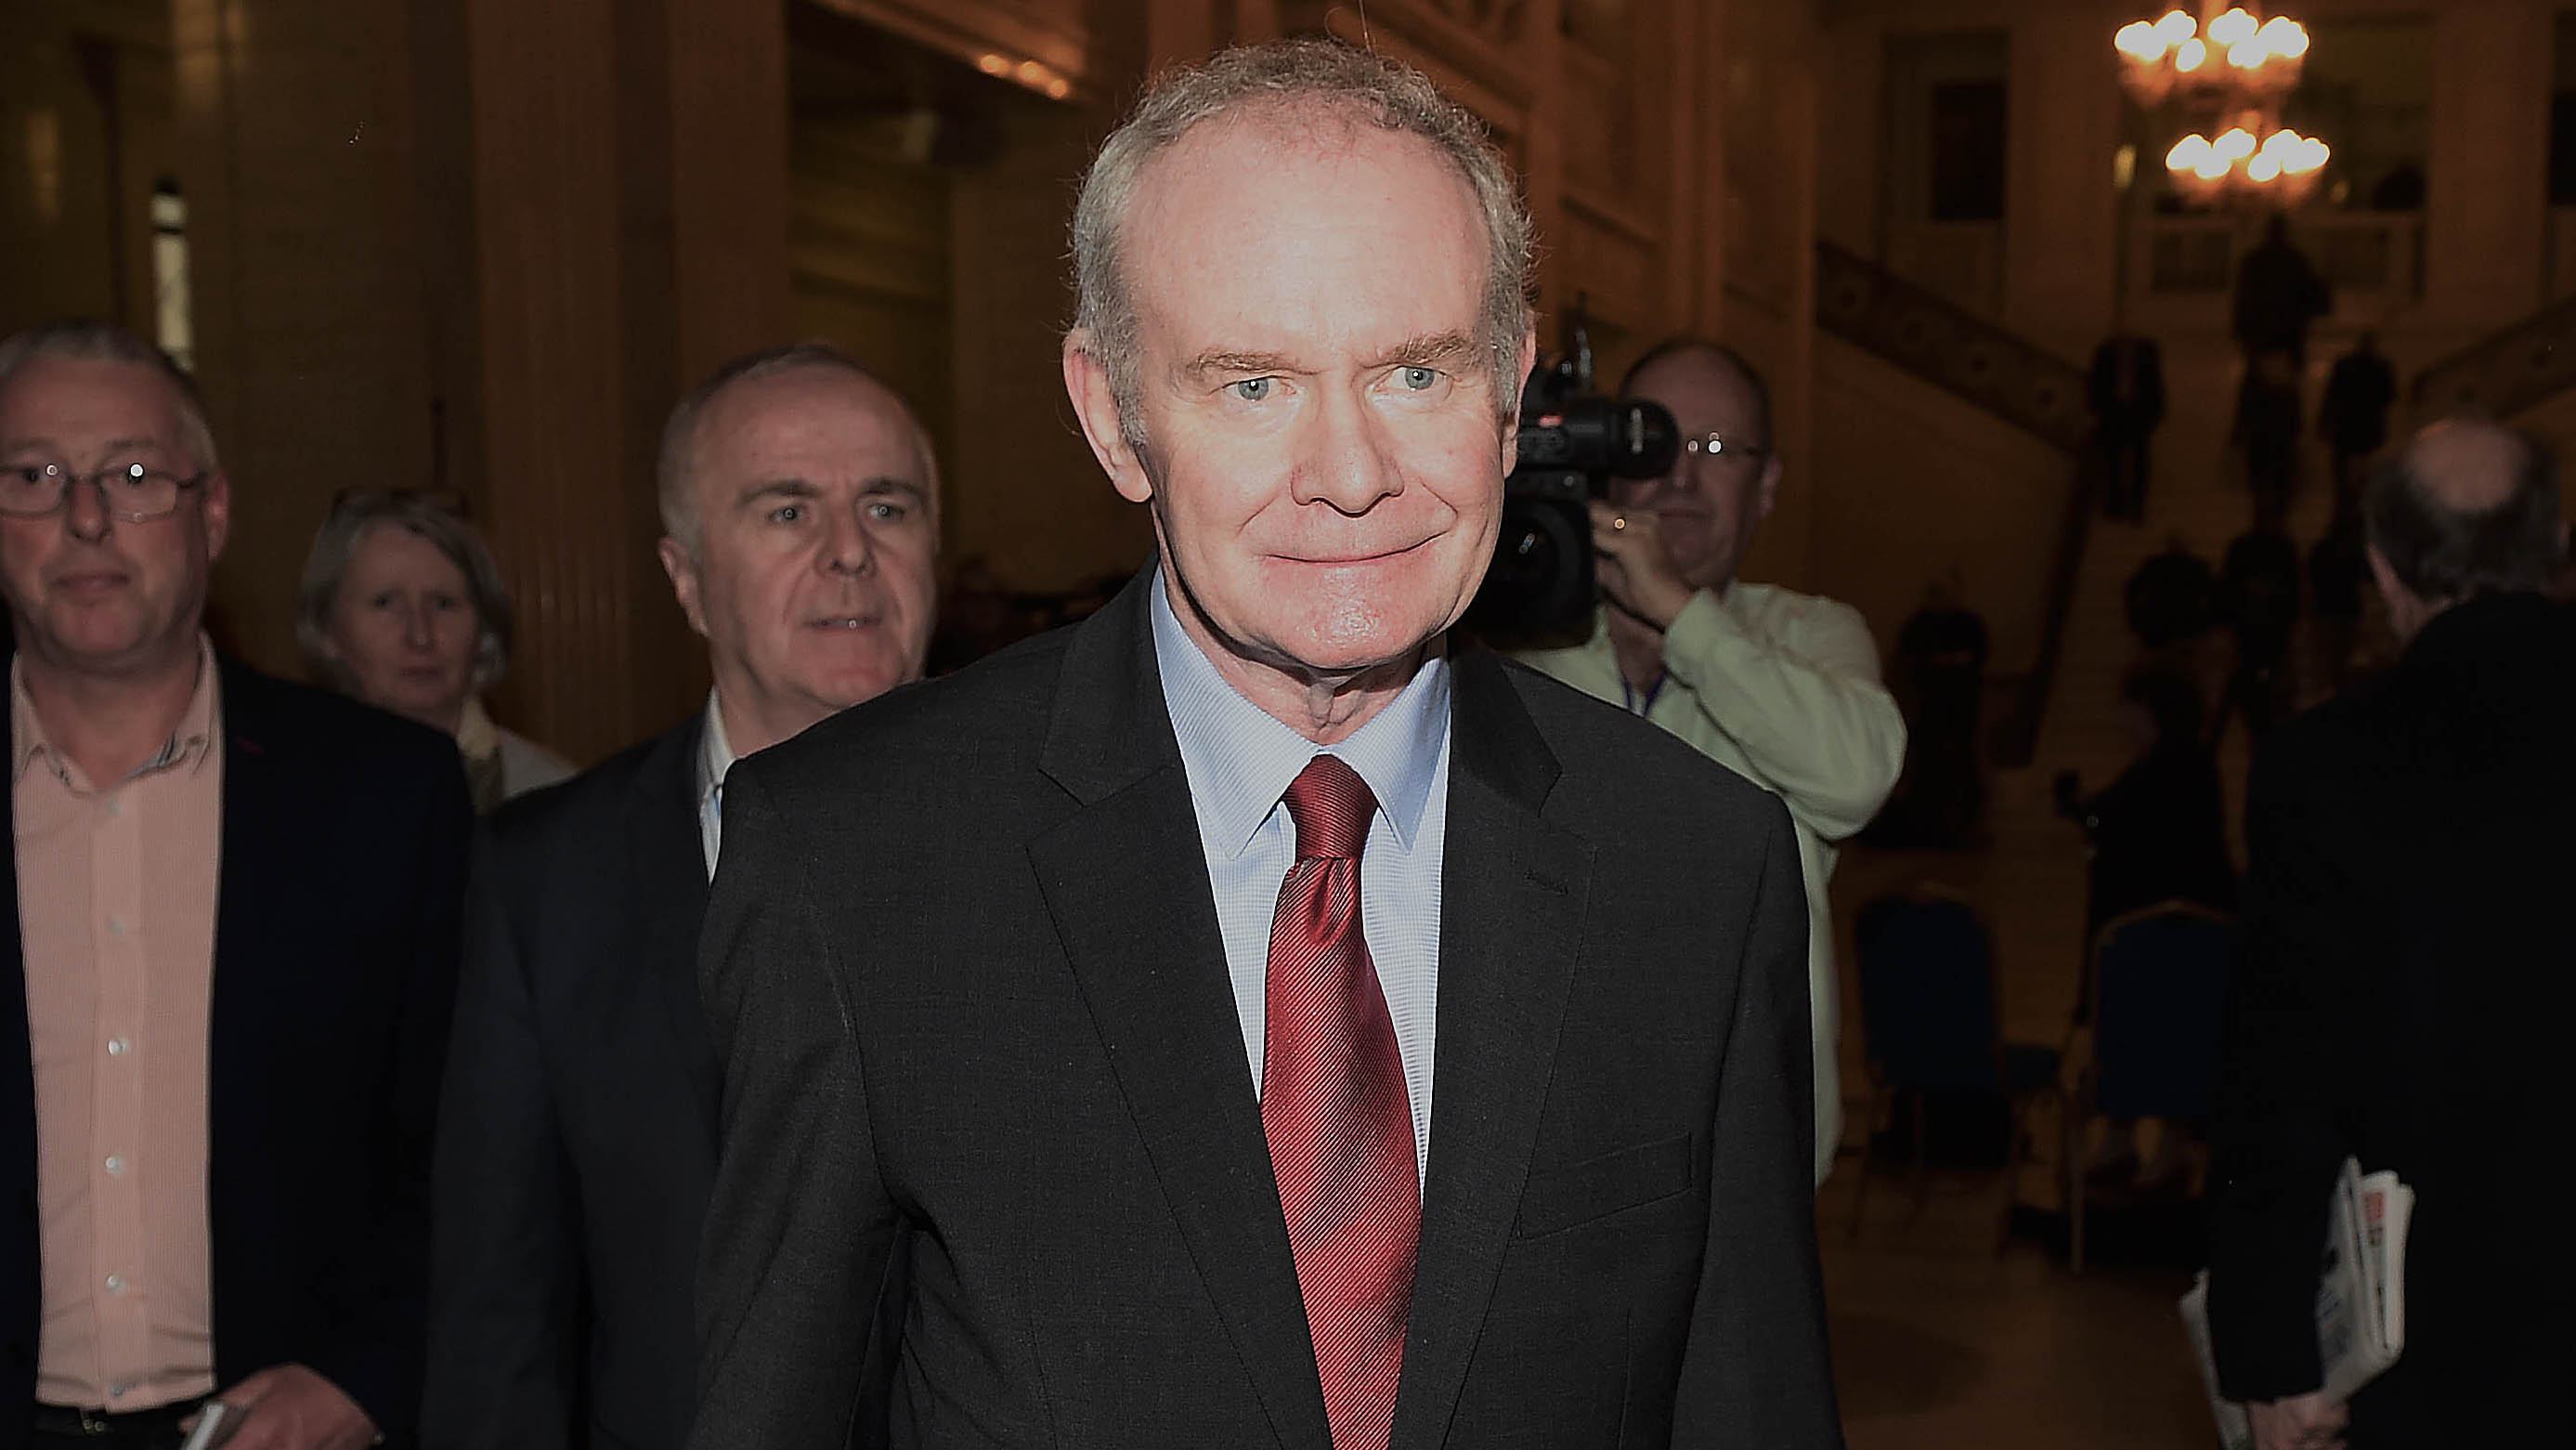 BELFAST, NORTHERN IRELAND - JANUARY 16: Former Deputy Northern Ireland First Minister Martin McGuinness walks through the Great Hall at Stormont after failing to nominate a candidate for the role of Deputy First Minister on January 16, 2017 in Belfast, Northern Ireland. Northern Ireland politics have been plunged into crisis following the RHI Cash for Ash controversy, a renewable heat scheme introduced by the then DETI minister Arlene Foster which could see the Northern Ireland taxpayer facing a bill of over £400 million pounds due to a flaw in the scheme. The resignation of Deputy First Minister Martin McGuinness last week and a failure to re-nominate a Sinn Fein candidate for the position by 5pm today will trigger a snap election. (Photo by Charles McQuillan/Getty Images)